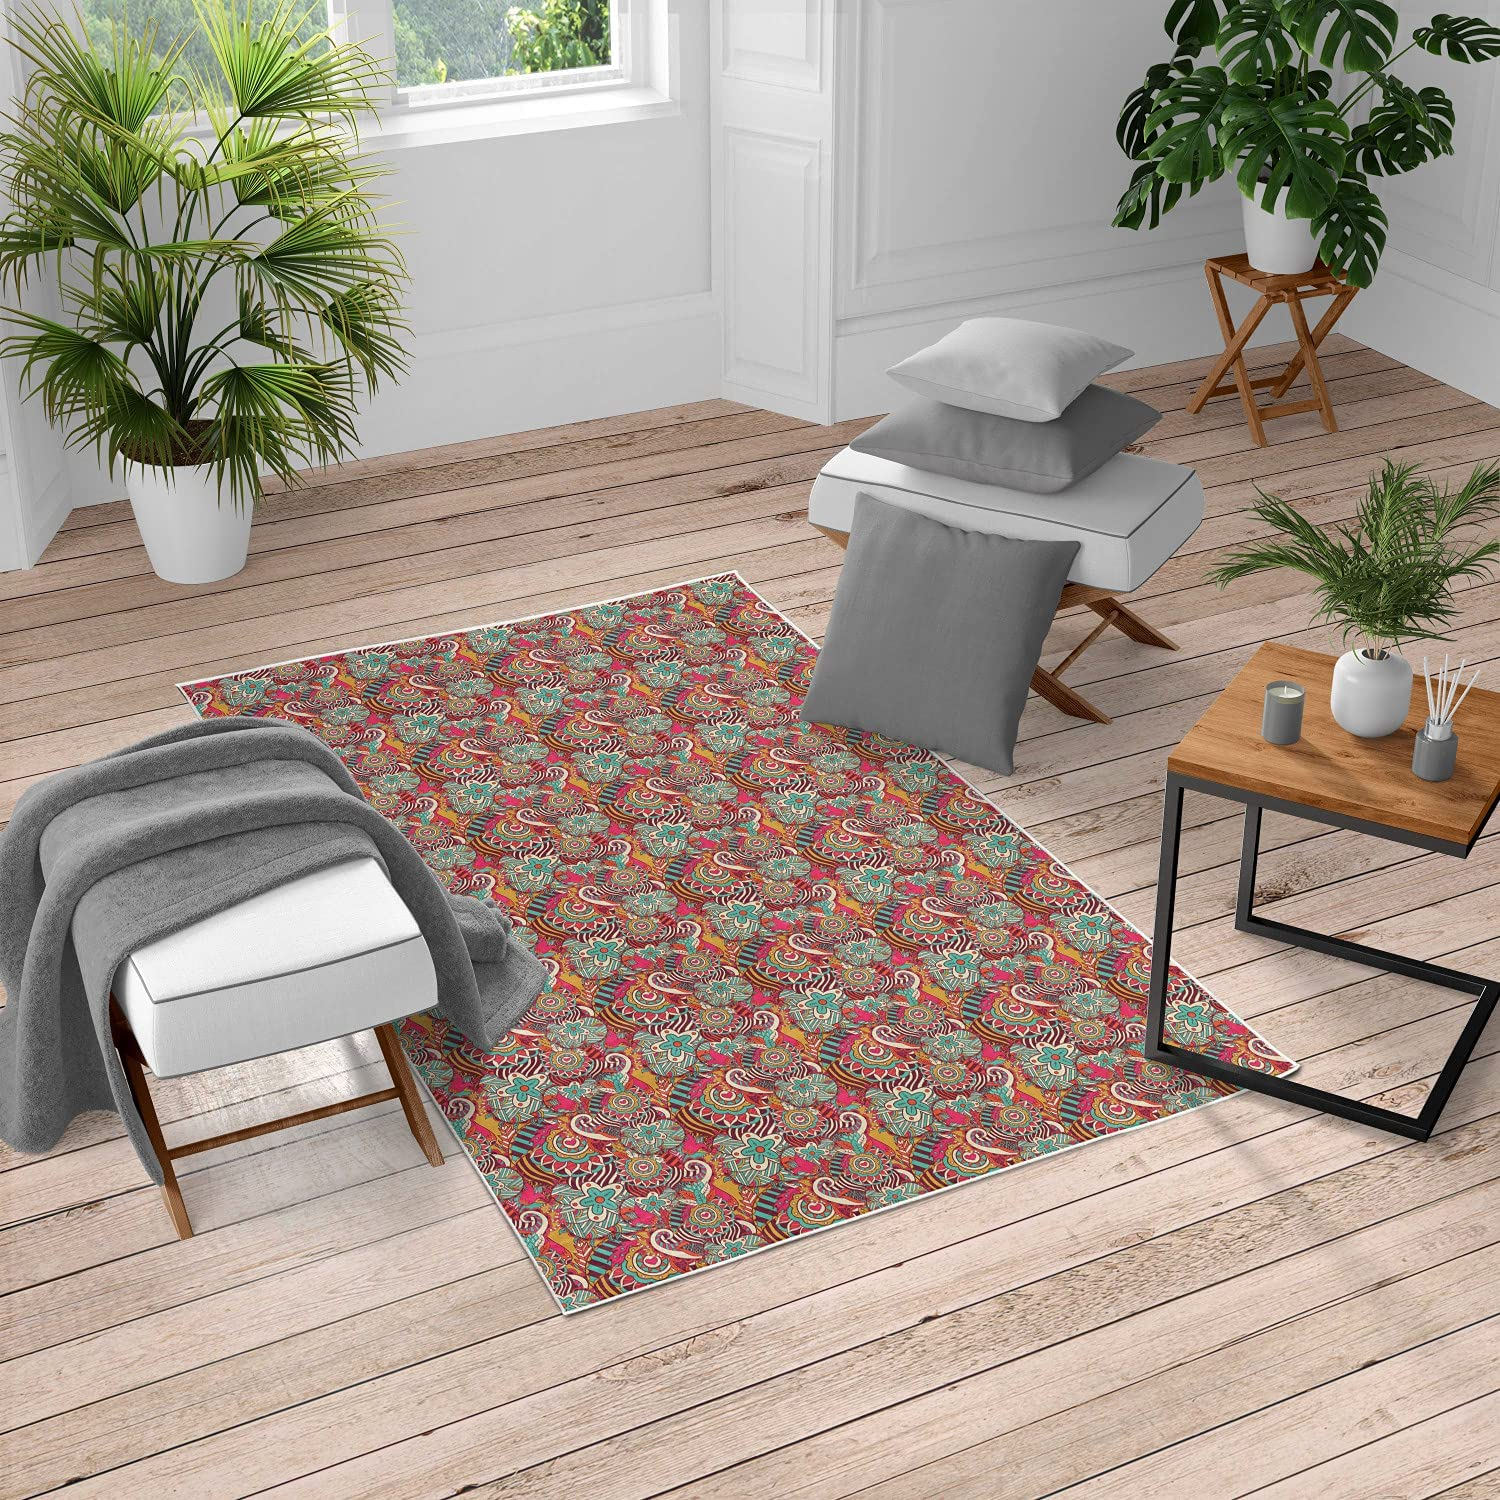 Ambesonne Colorful Turkish Area Rug Composition Hand Limited time trial price Super popular specialty store Drawn with